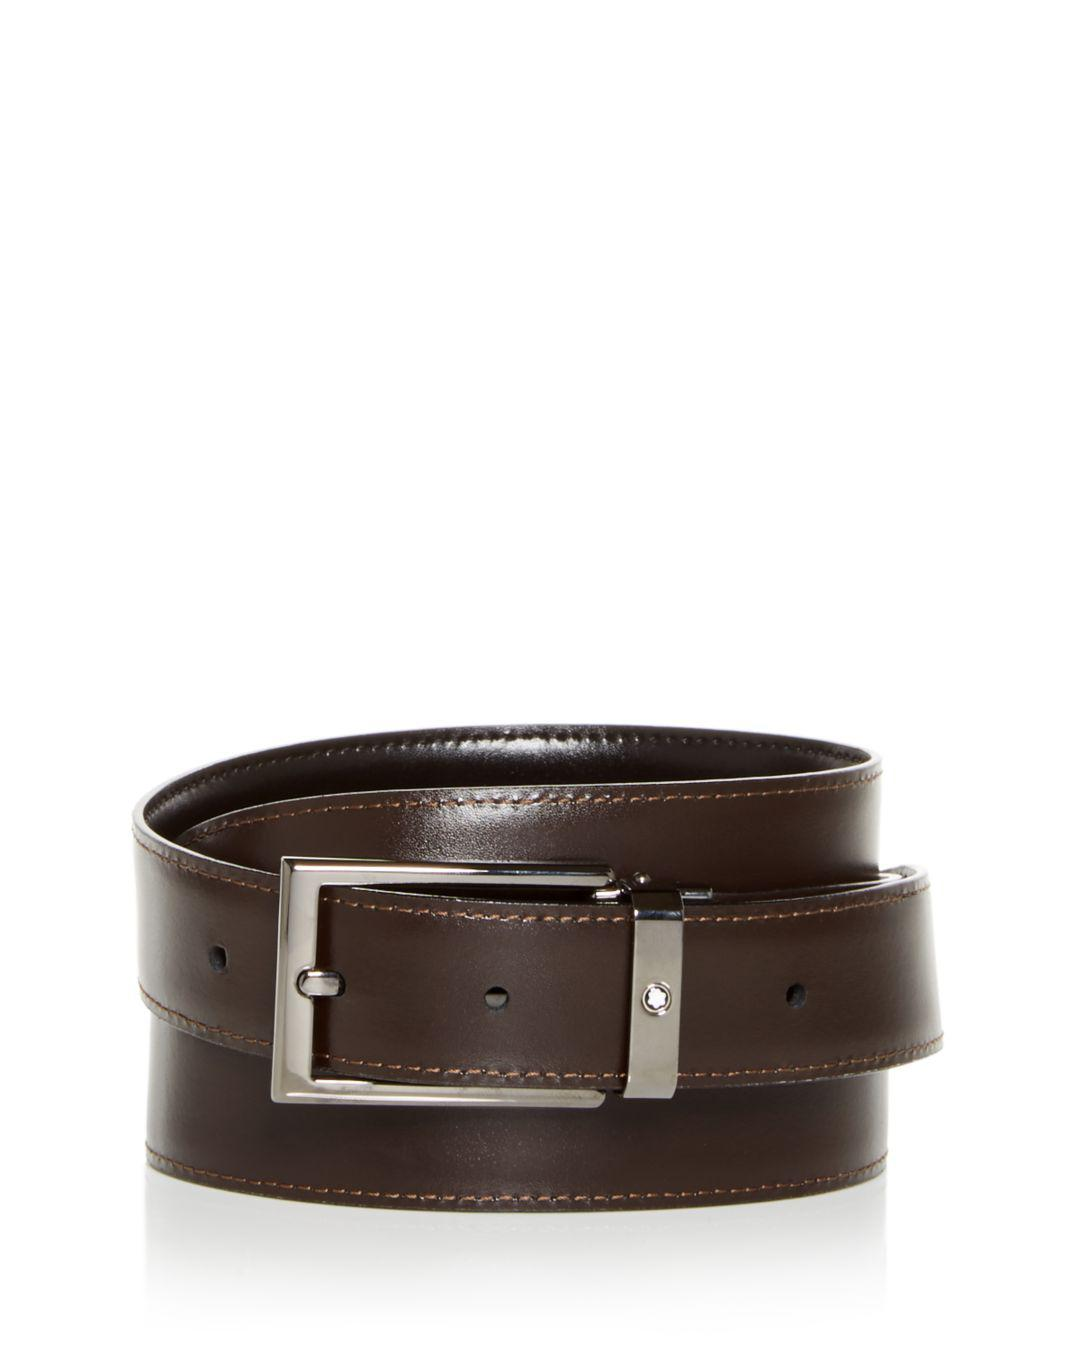 b4ed476ce23 Lyst - Montblanc Contemporary Reversible Leather Belt in Brown for Men